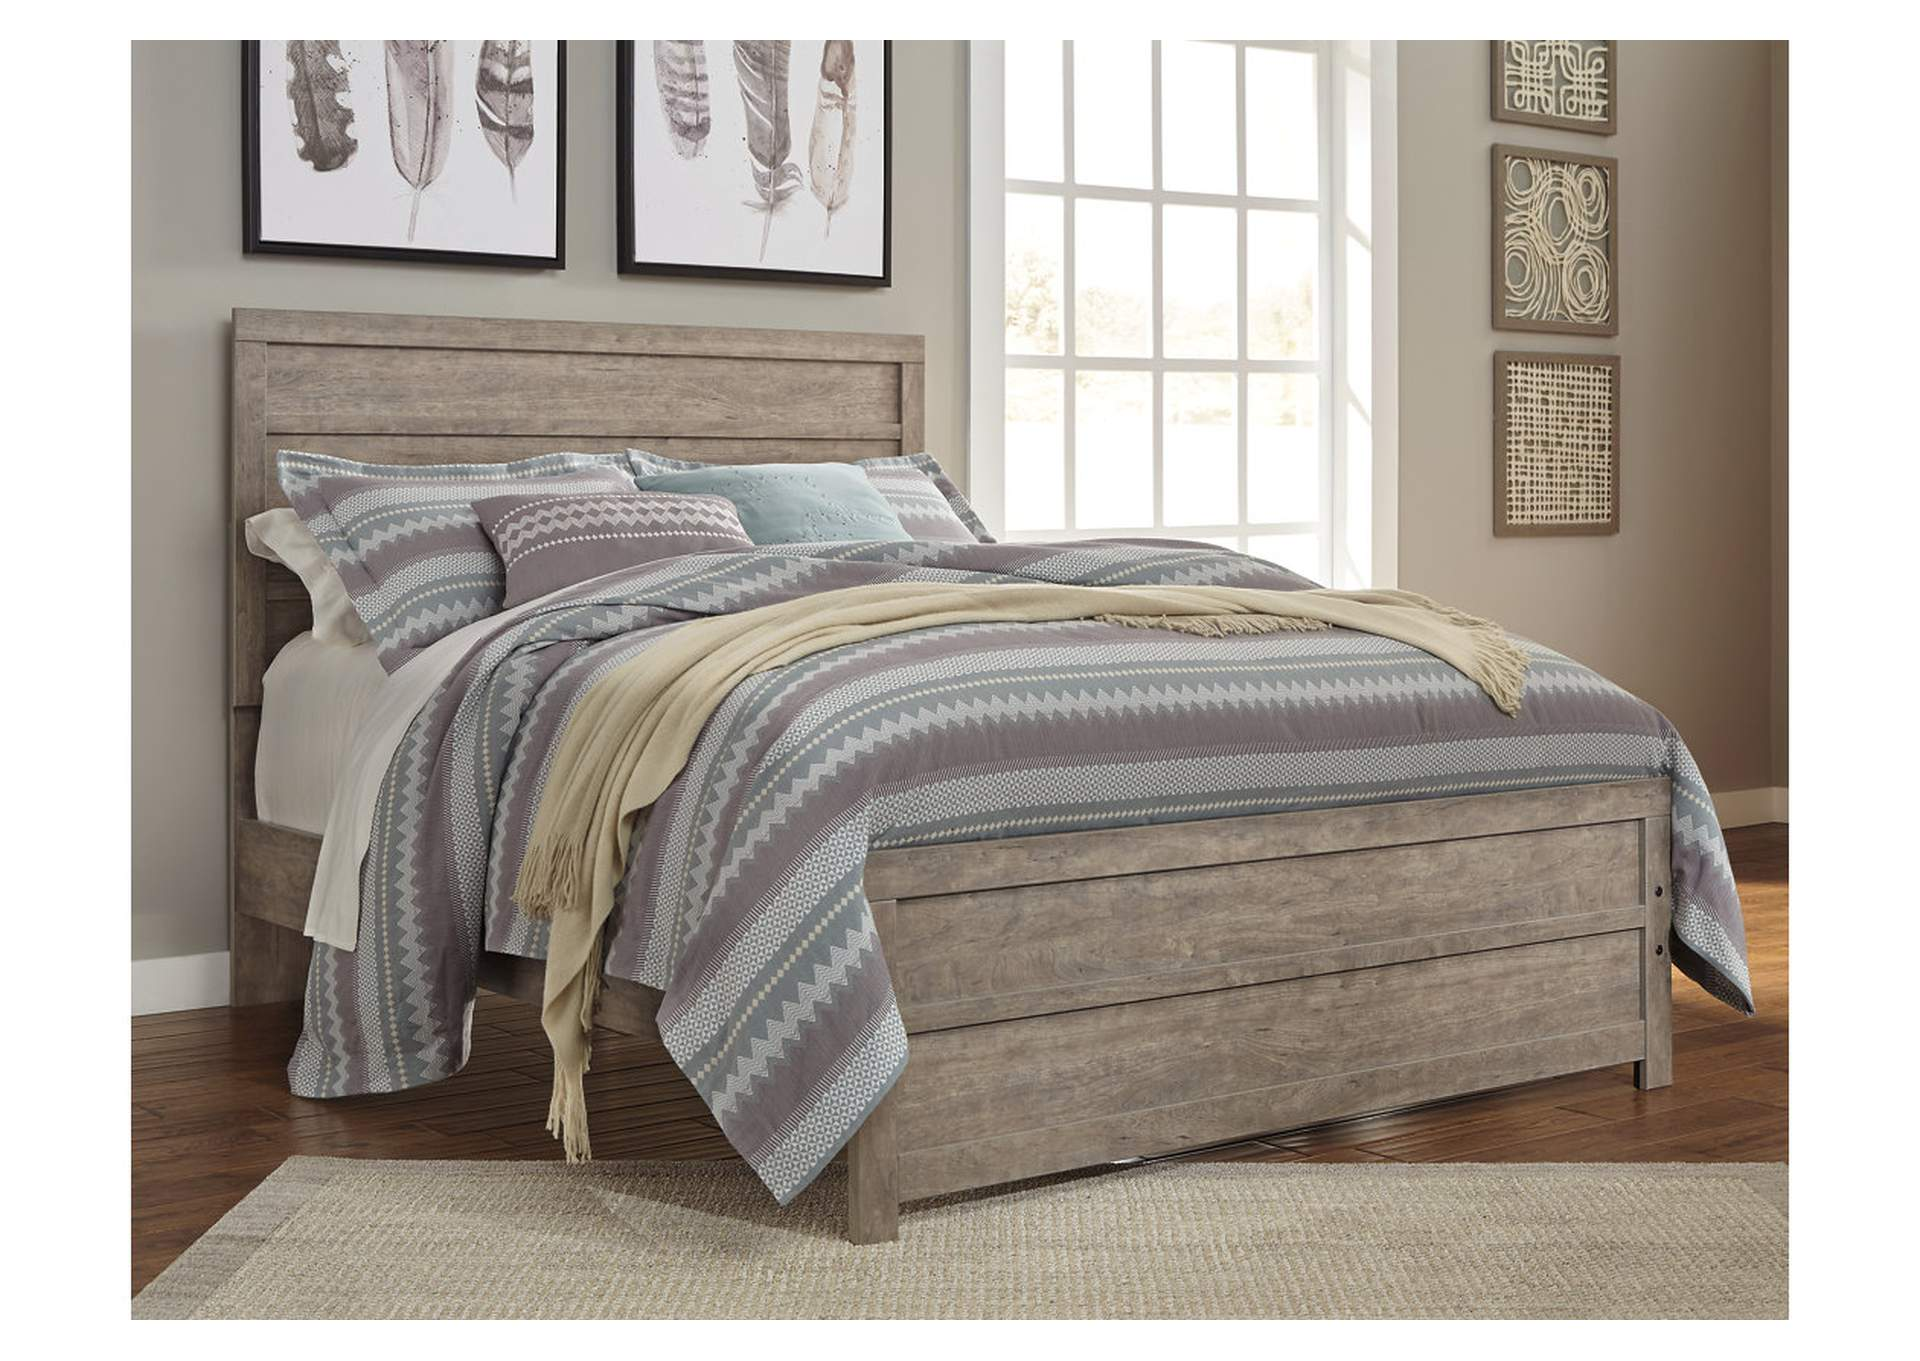 Culverbach Gray Queen Panel Bed,Signature Design By Ashley